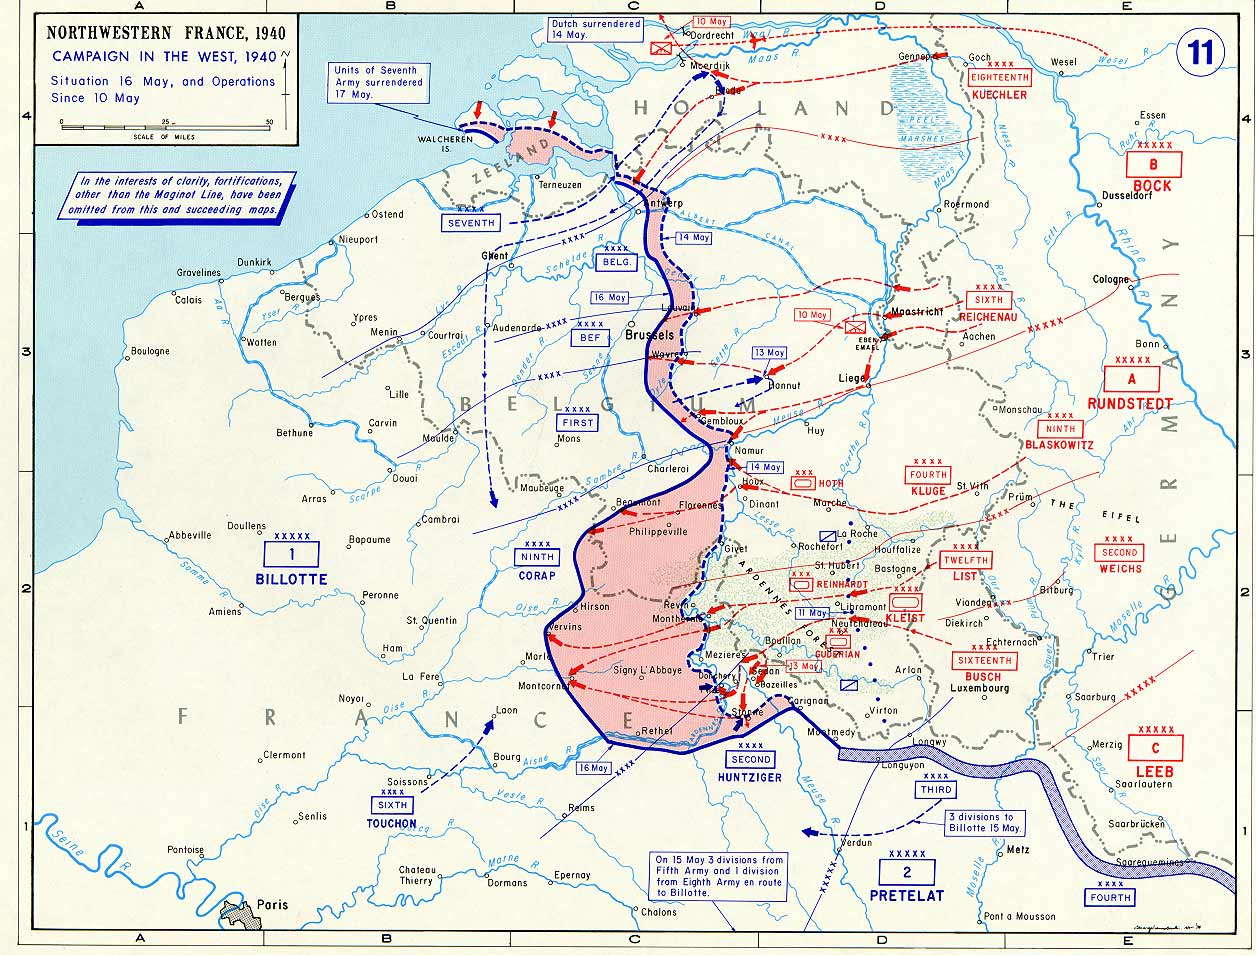 Map of Northwestern France May 1940